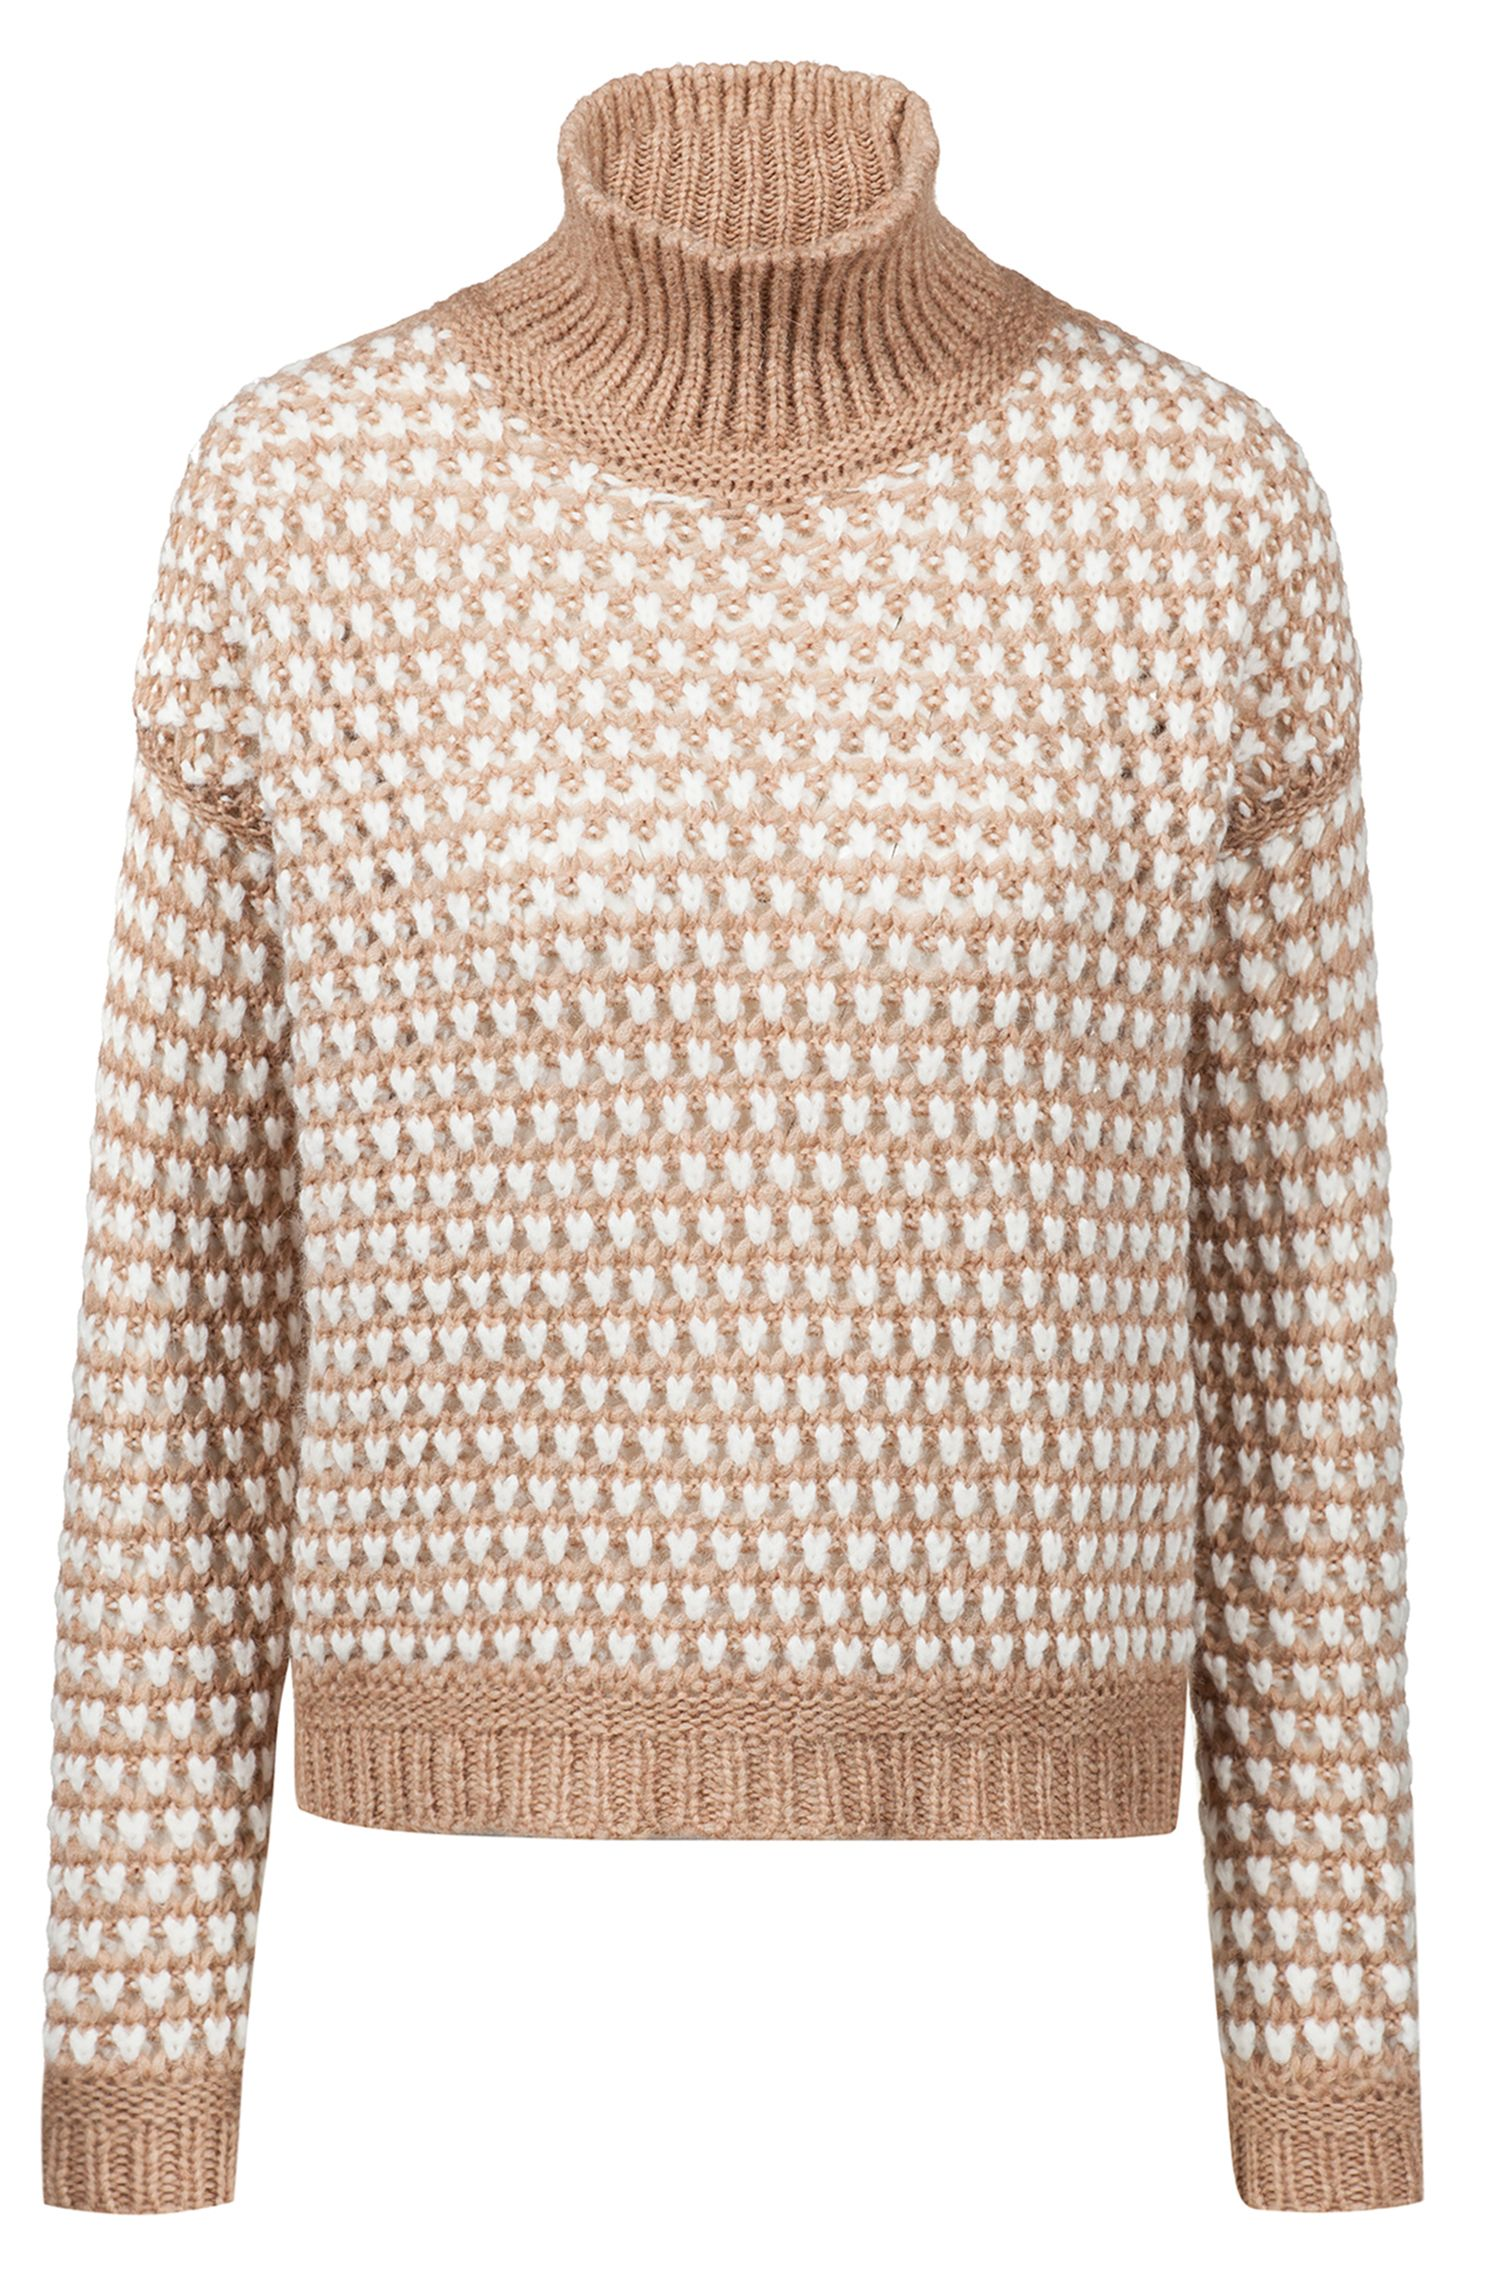 Oversized-fit cropped sweater in a two-tone knit, Patterned